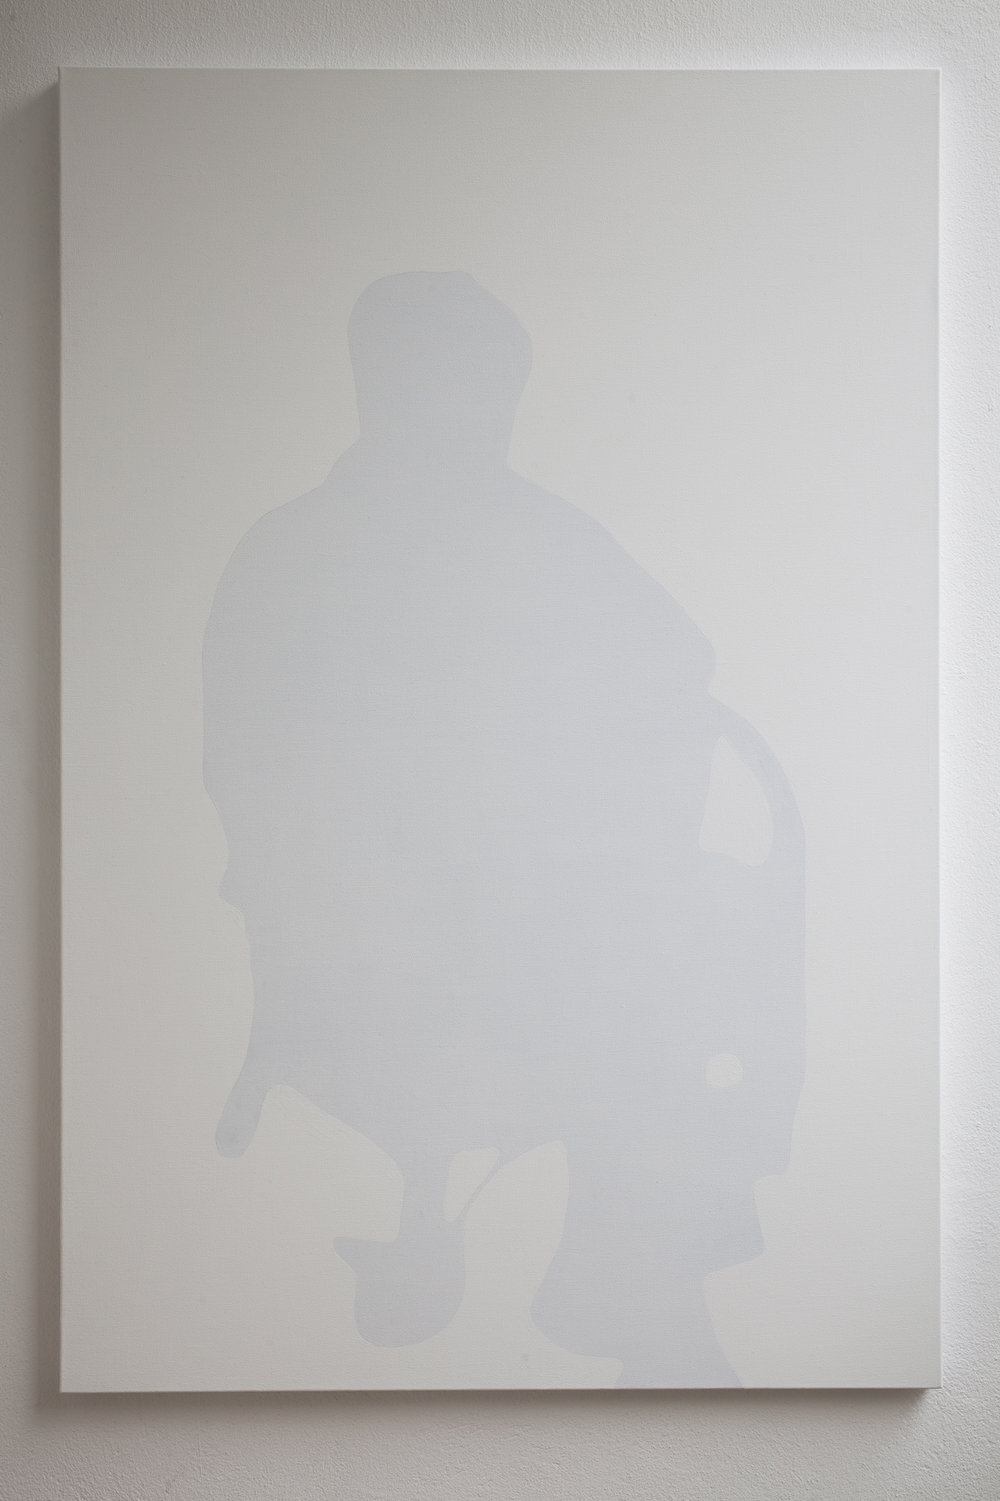 Shadow of old woman, 2011, acrylic on canvas, 100 x 120 cm